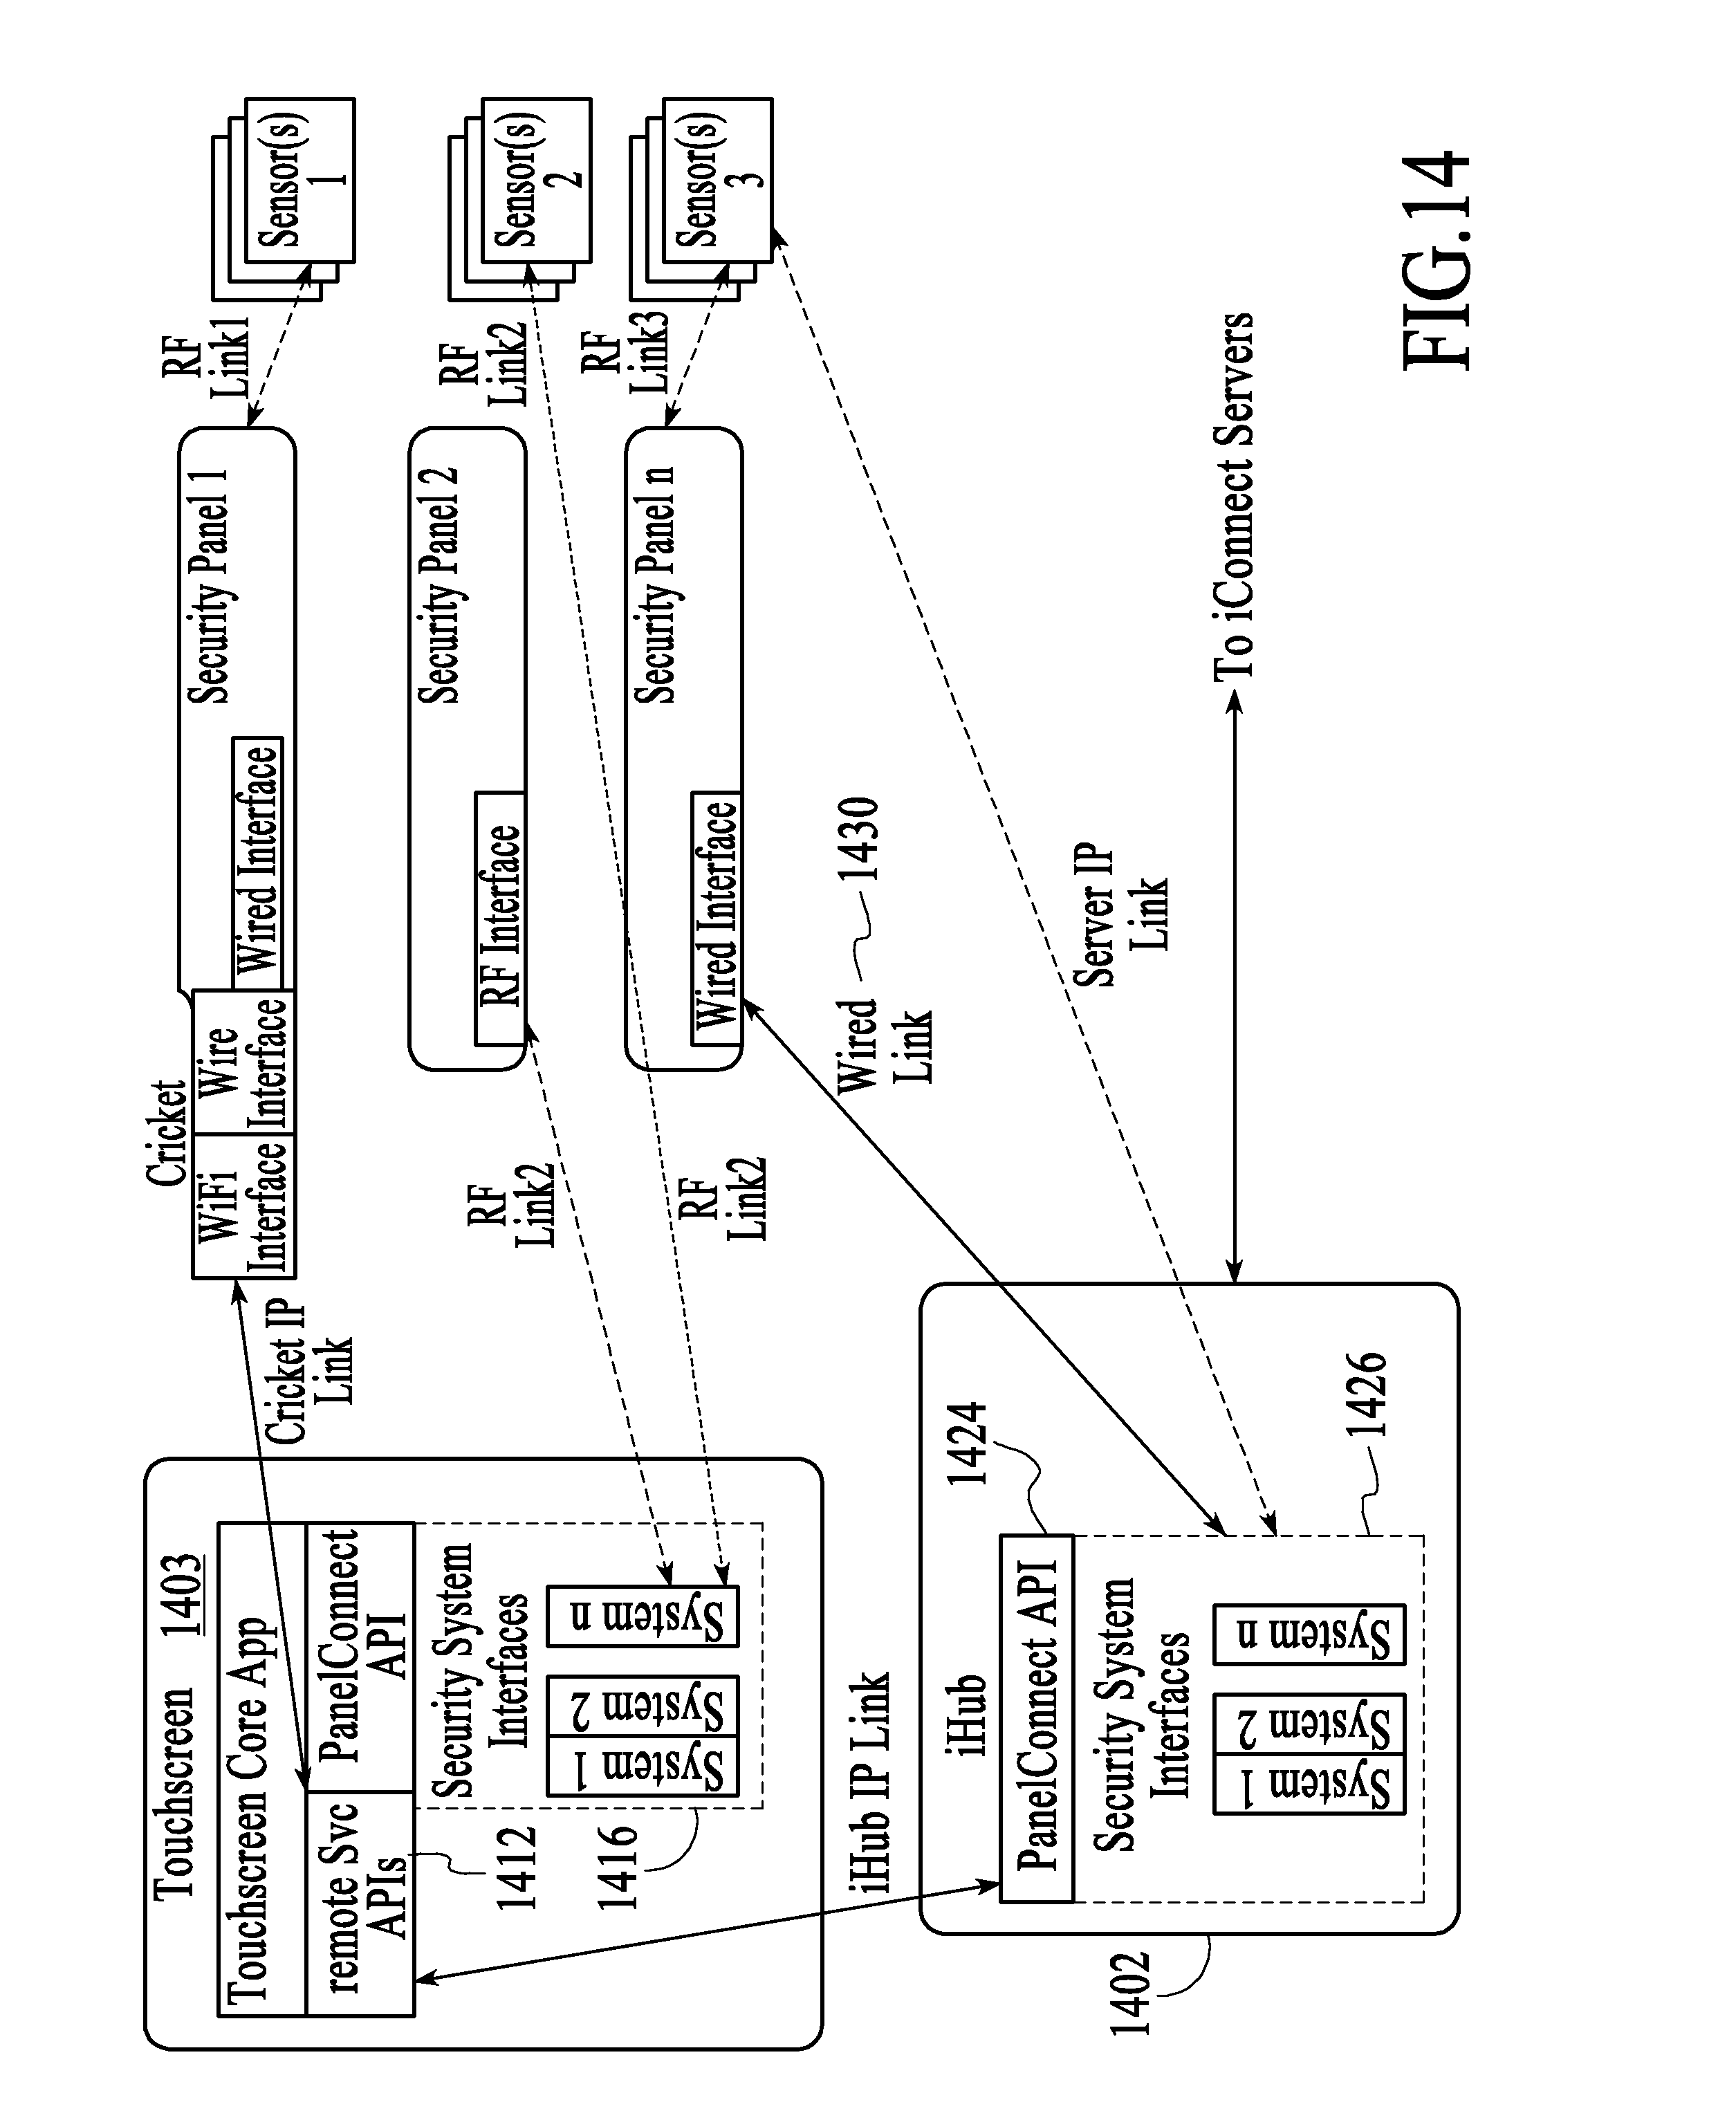 Patent Us 9628440 B2 Wireless Video Security System Diagram Modular For Expandability 0 Petitions